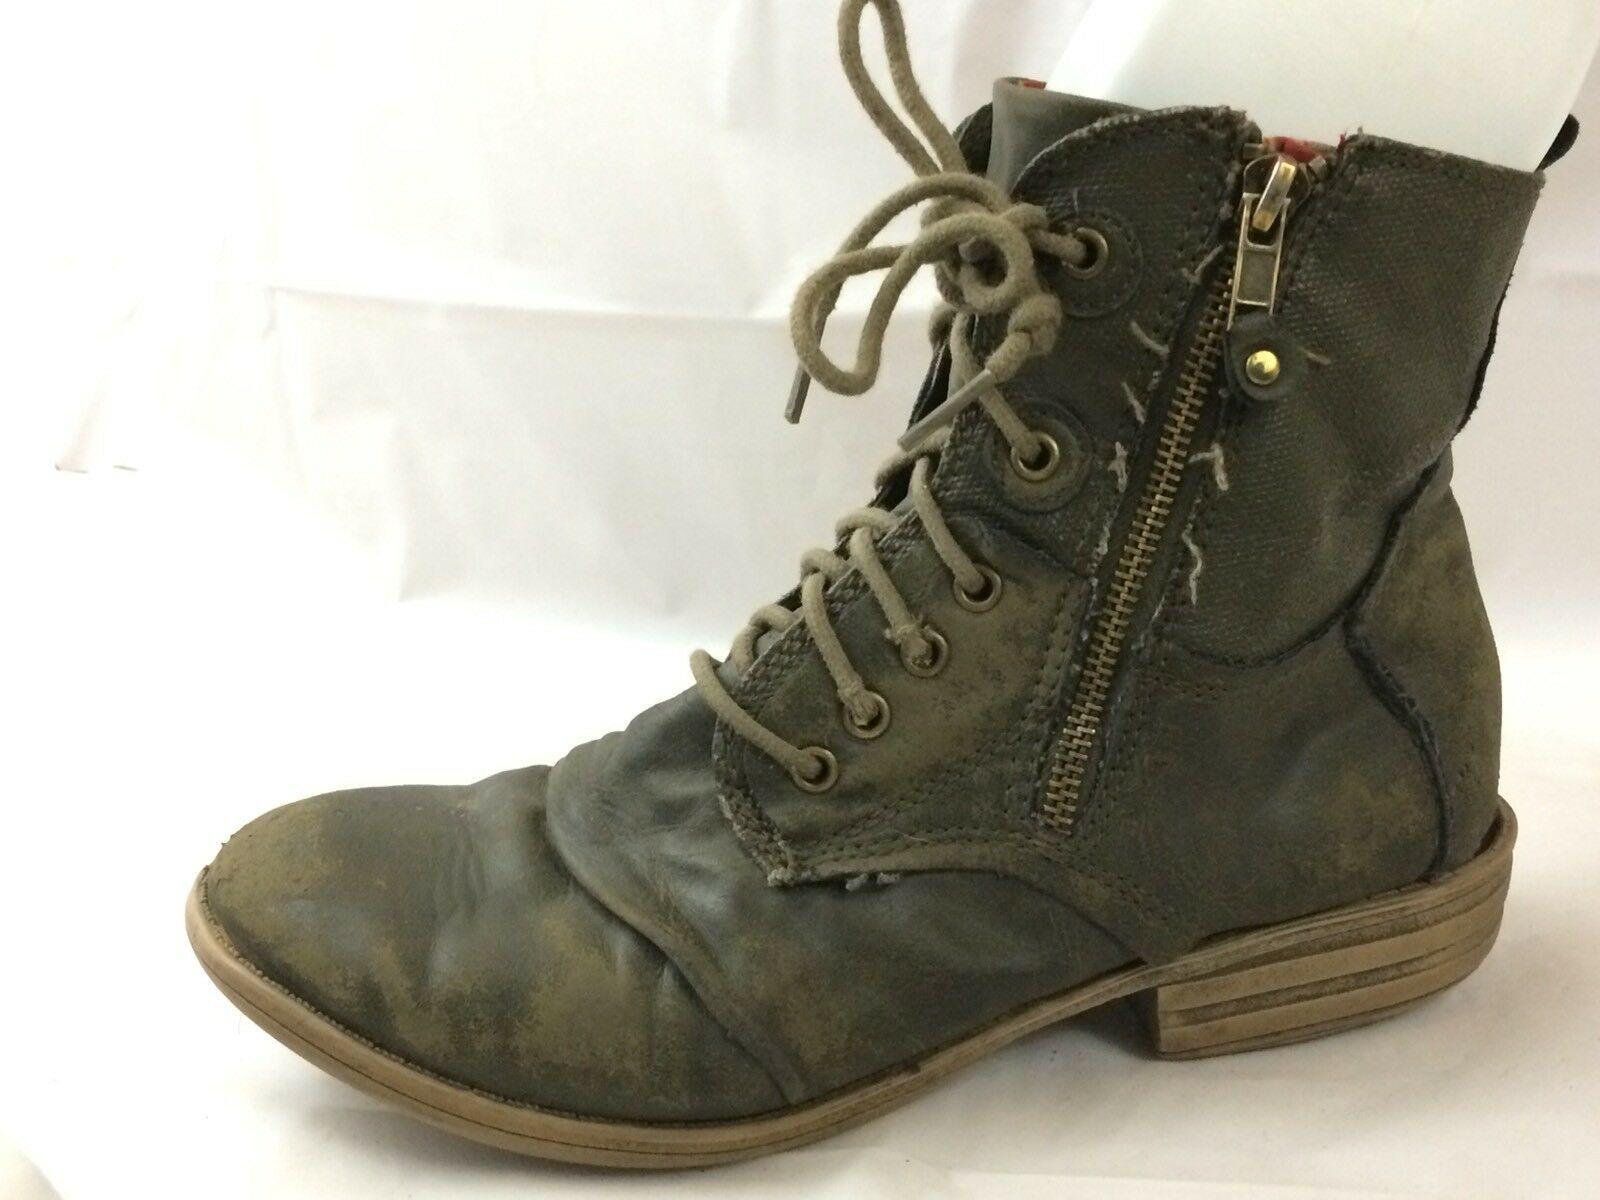 American Rag Wmns 9 M Green Destroyed Ankle Combat Boot Faux Leather Lace Up Zip